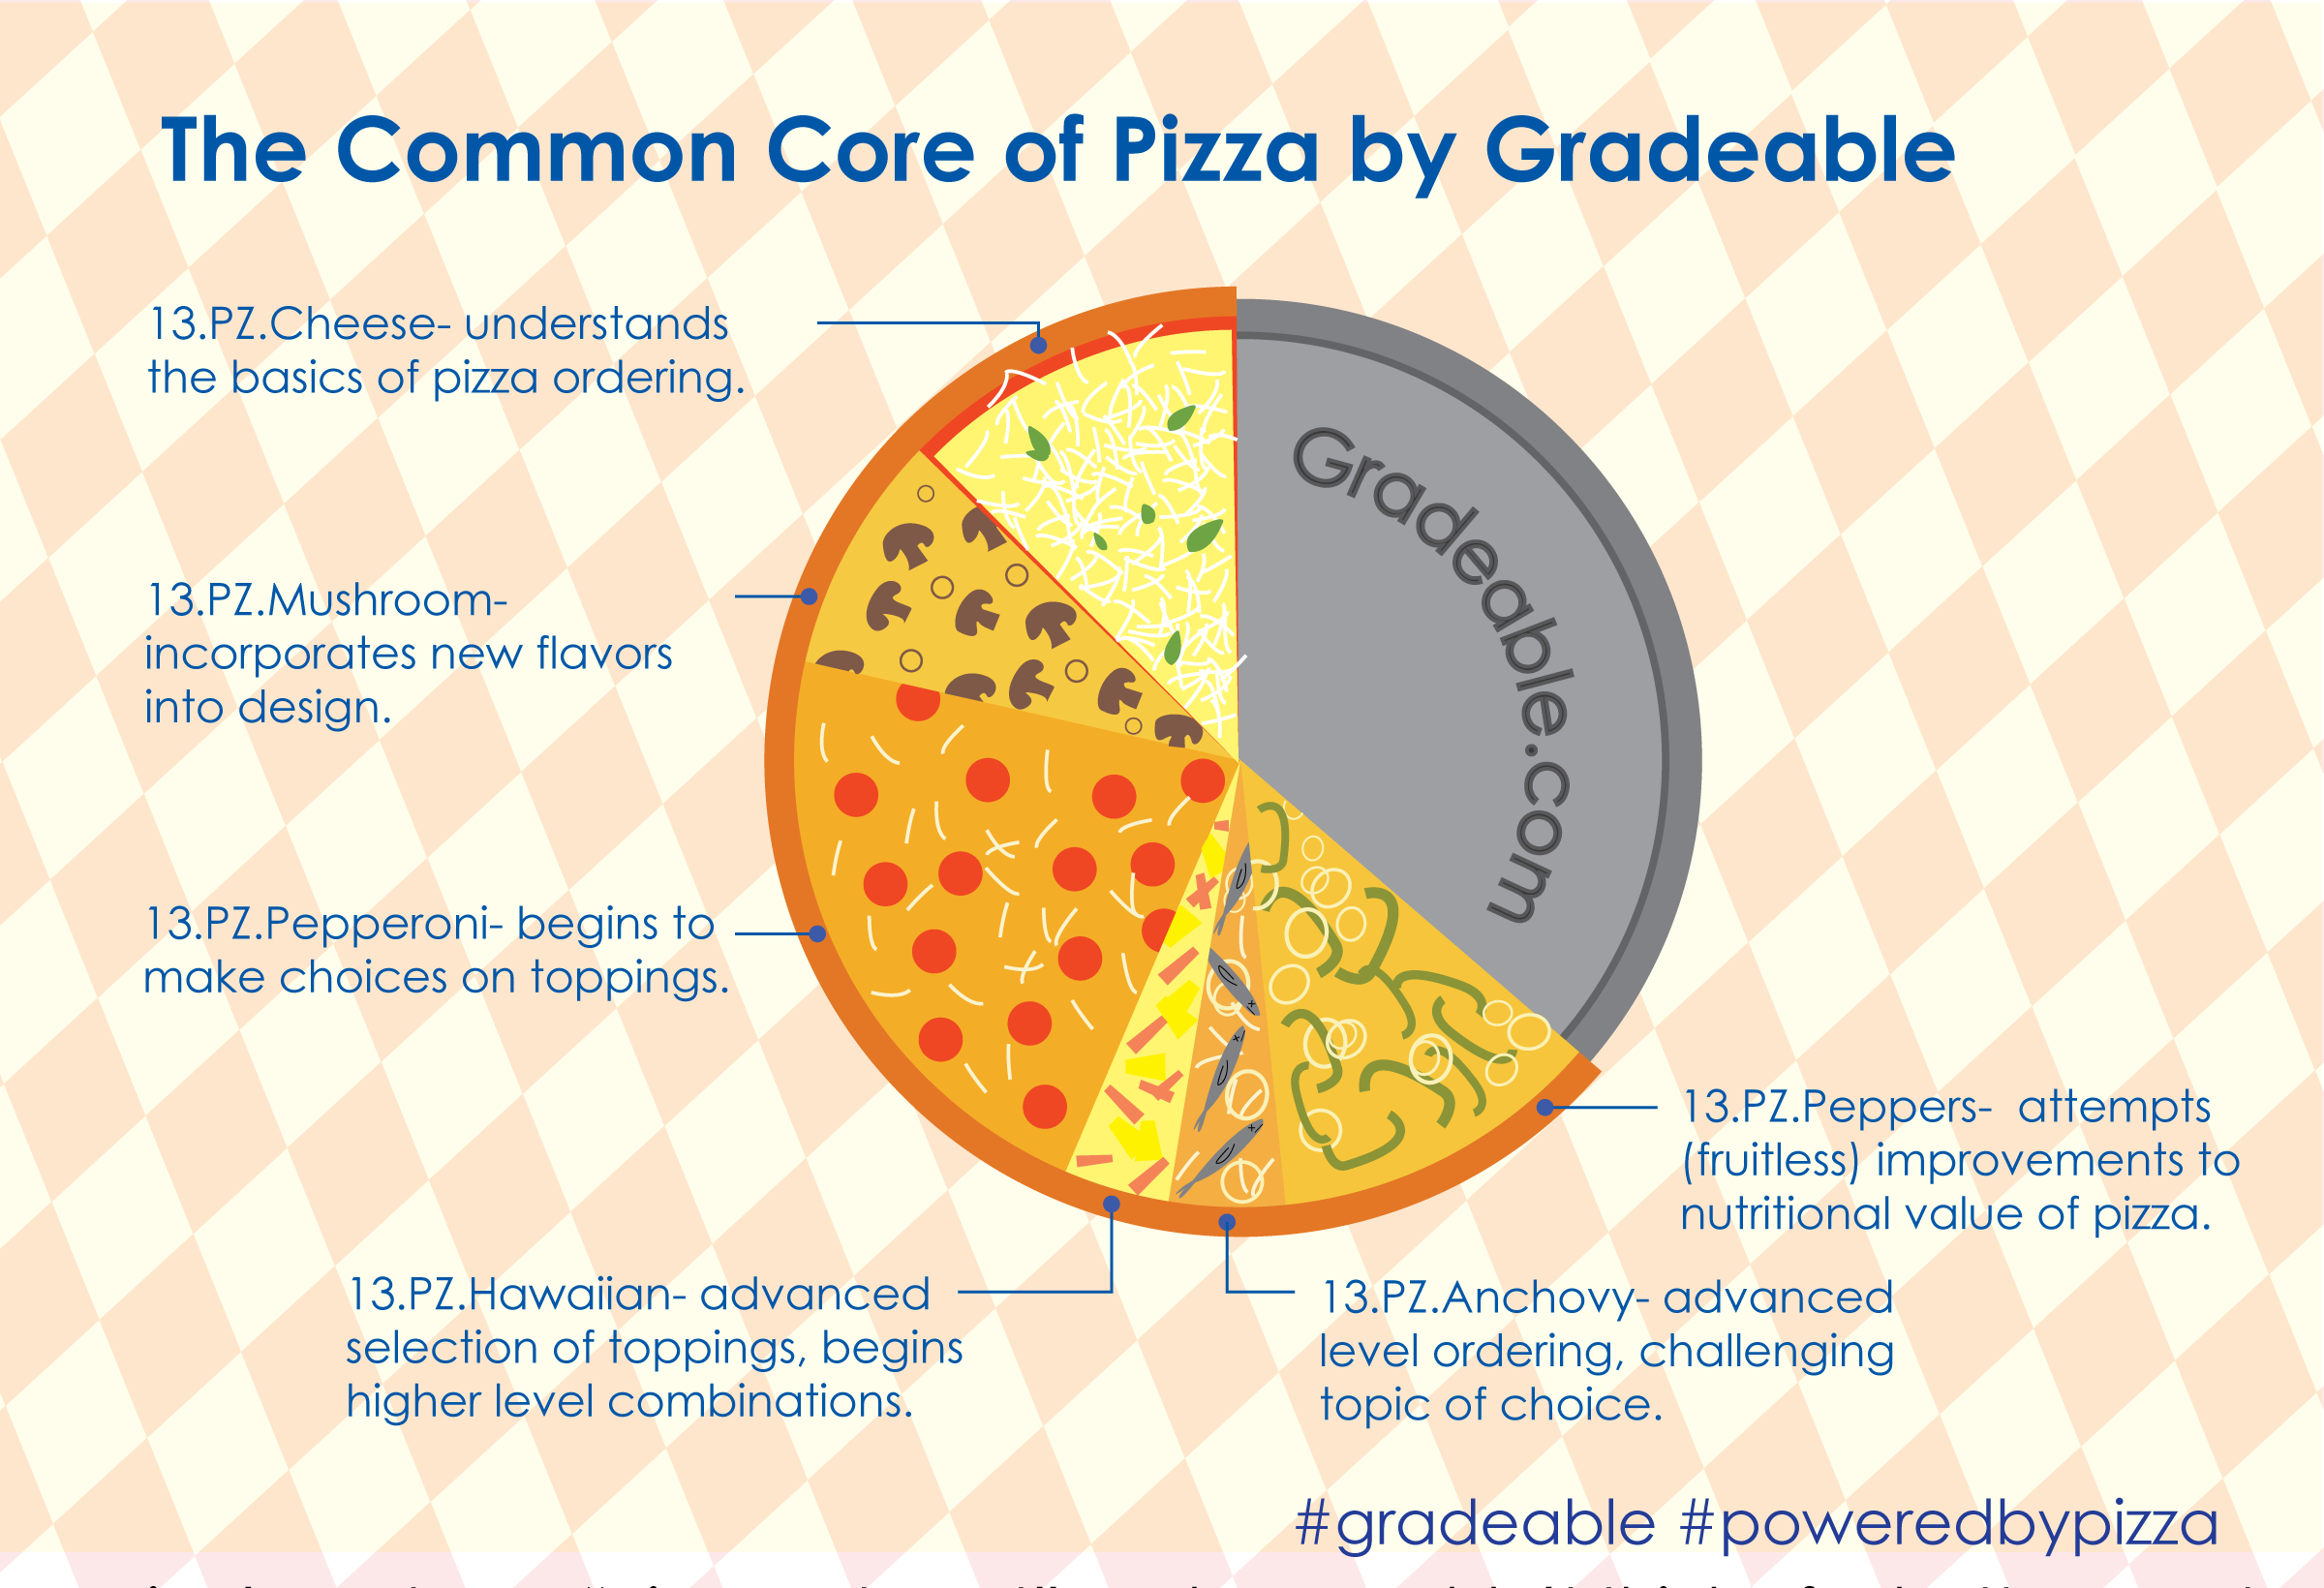 The Common Core of Pizza by Gradeable